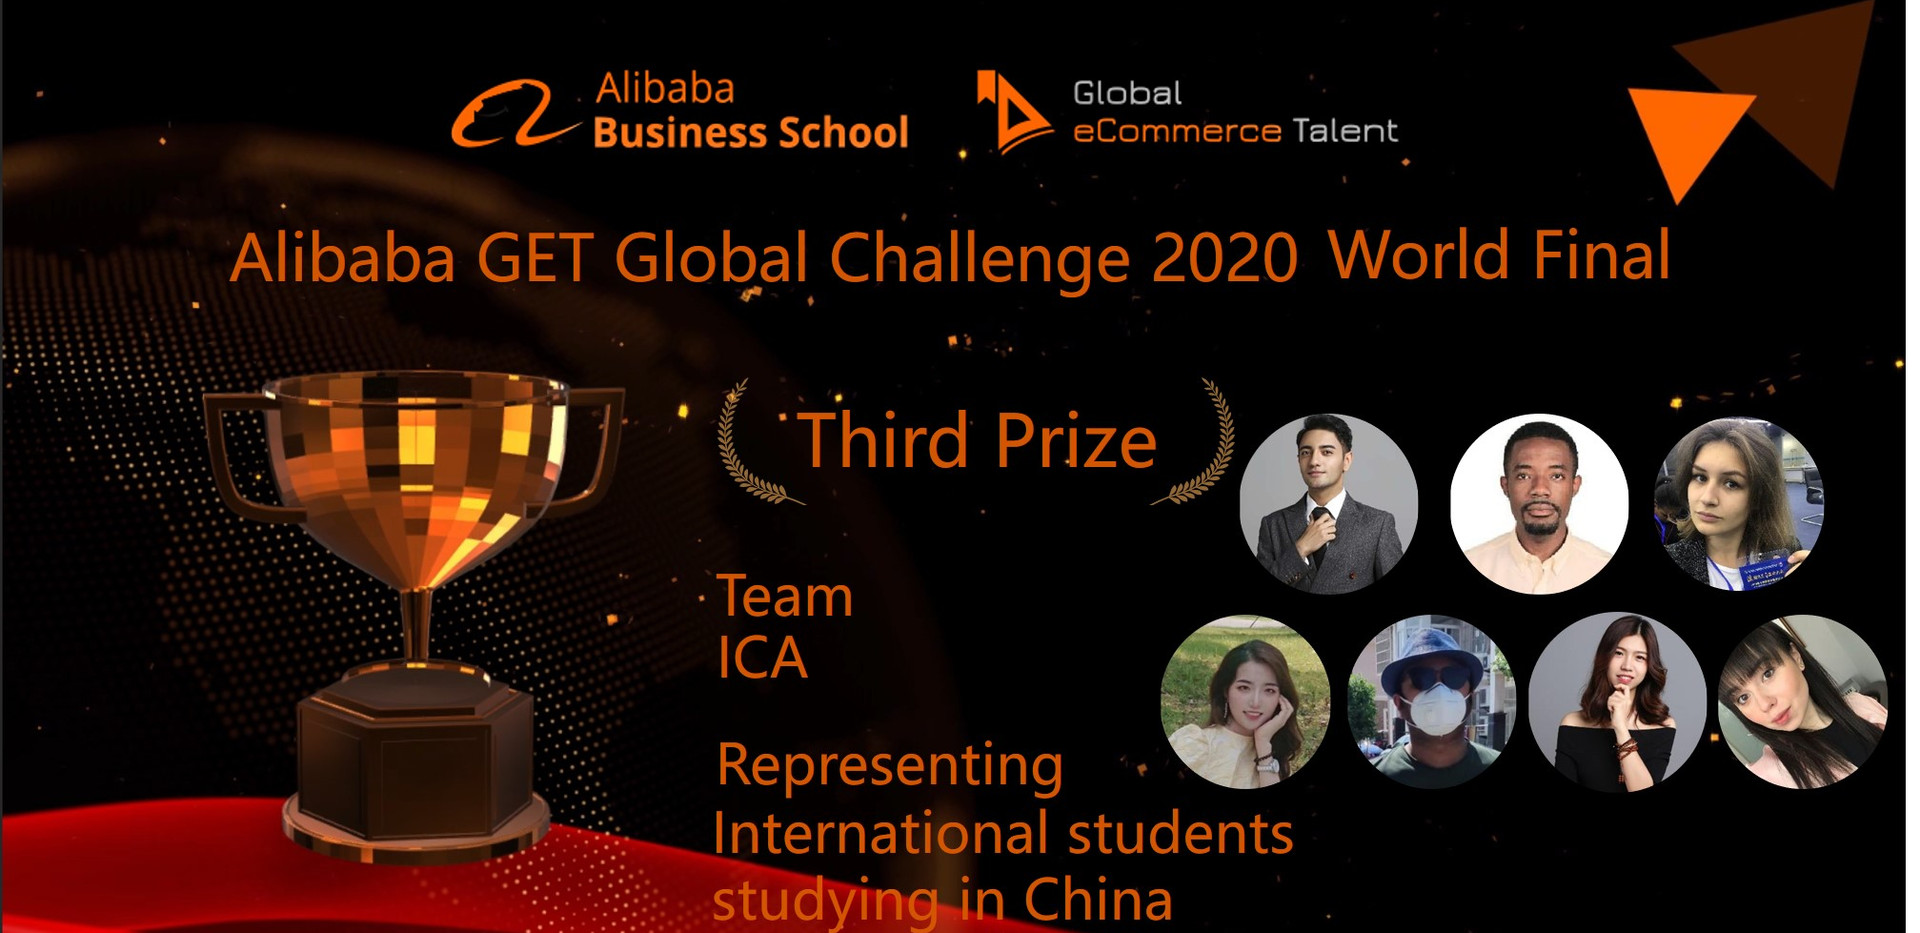 Third Prize - International students study in China